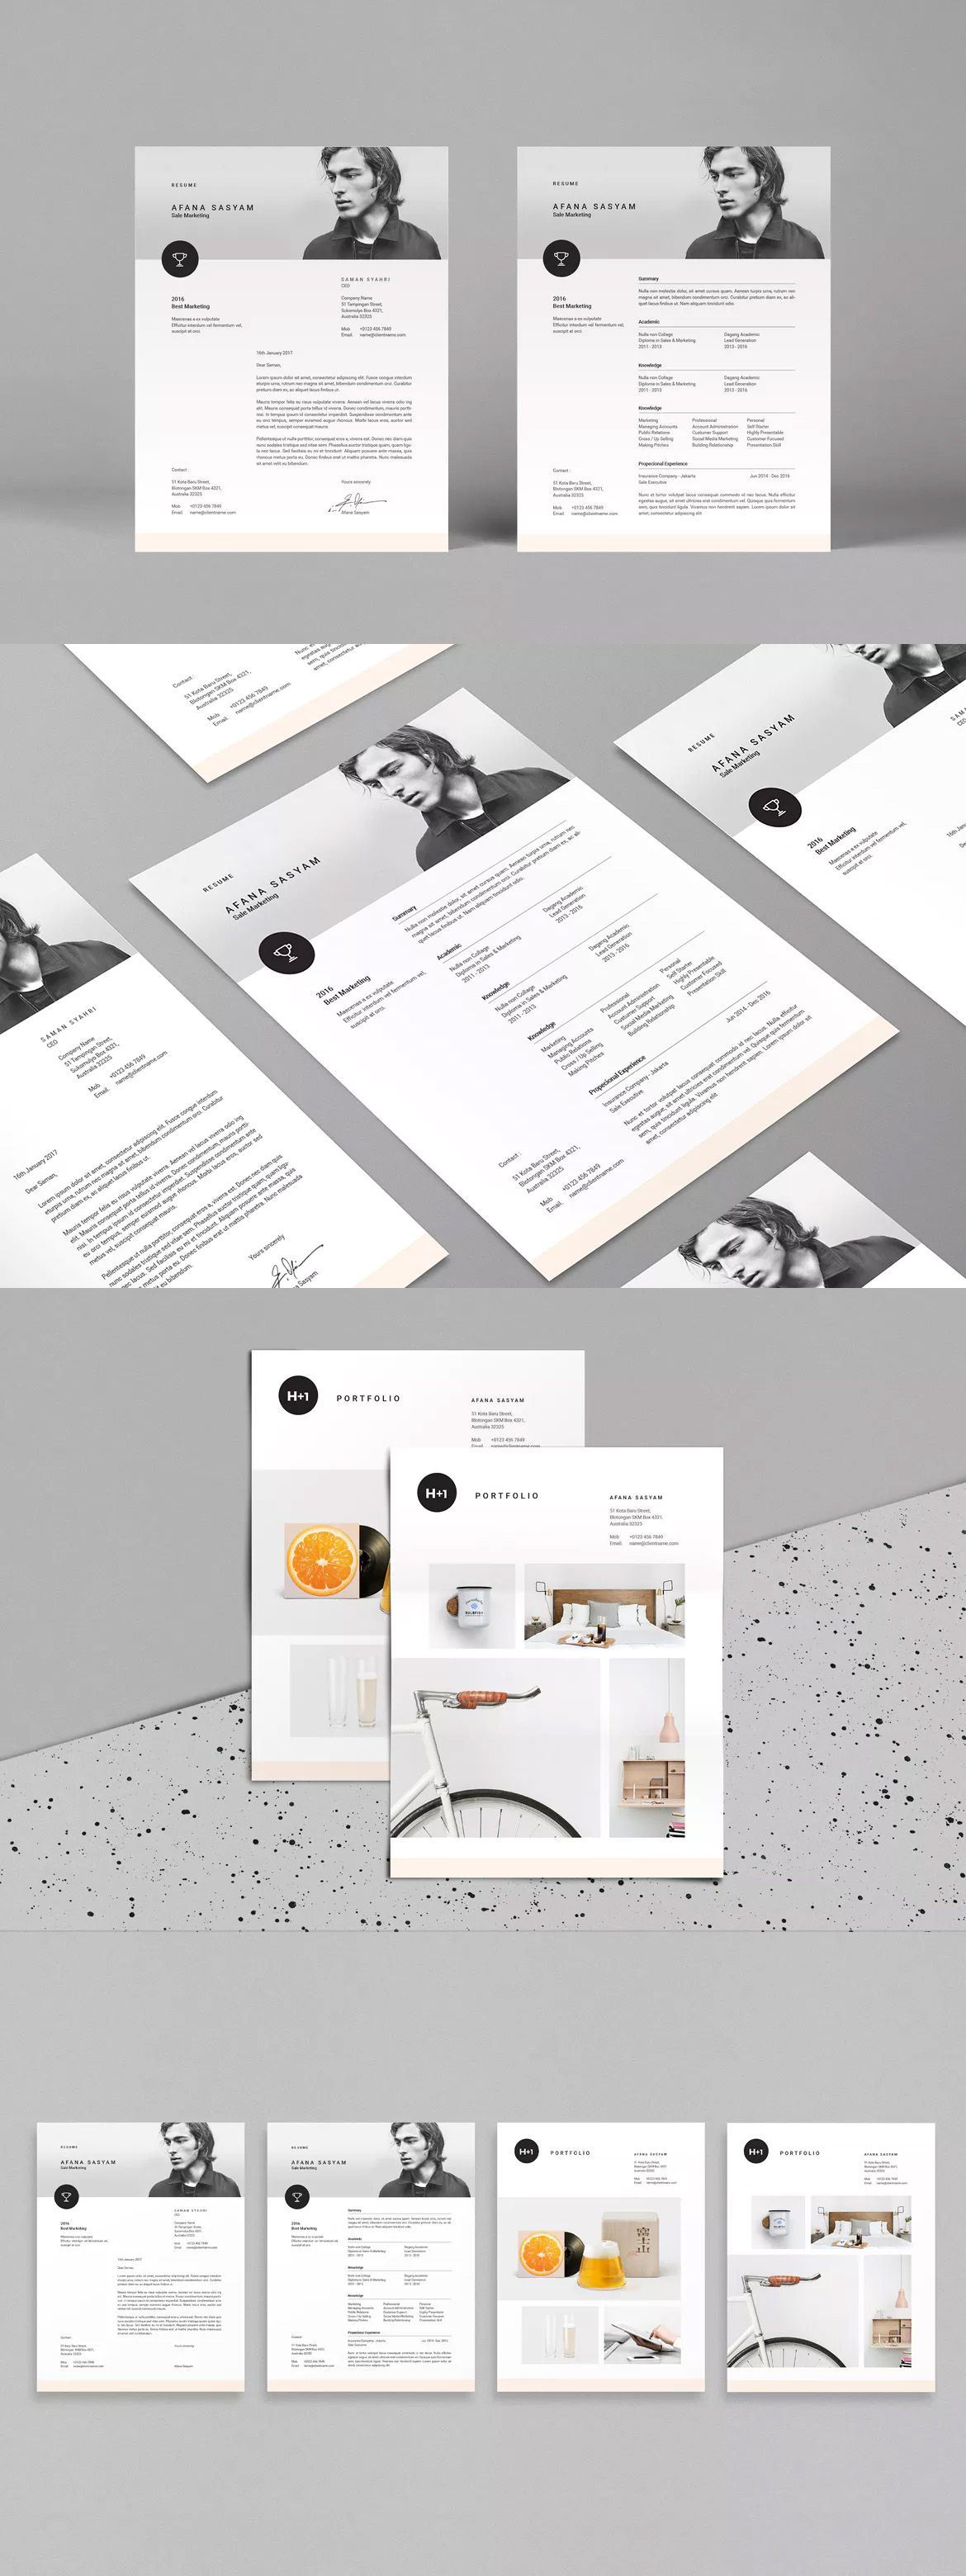 Resume Template INDD | Resume Templates | Pinterest | Template